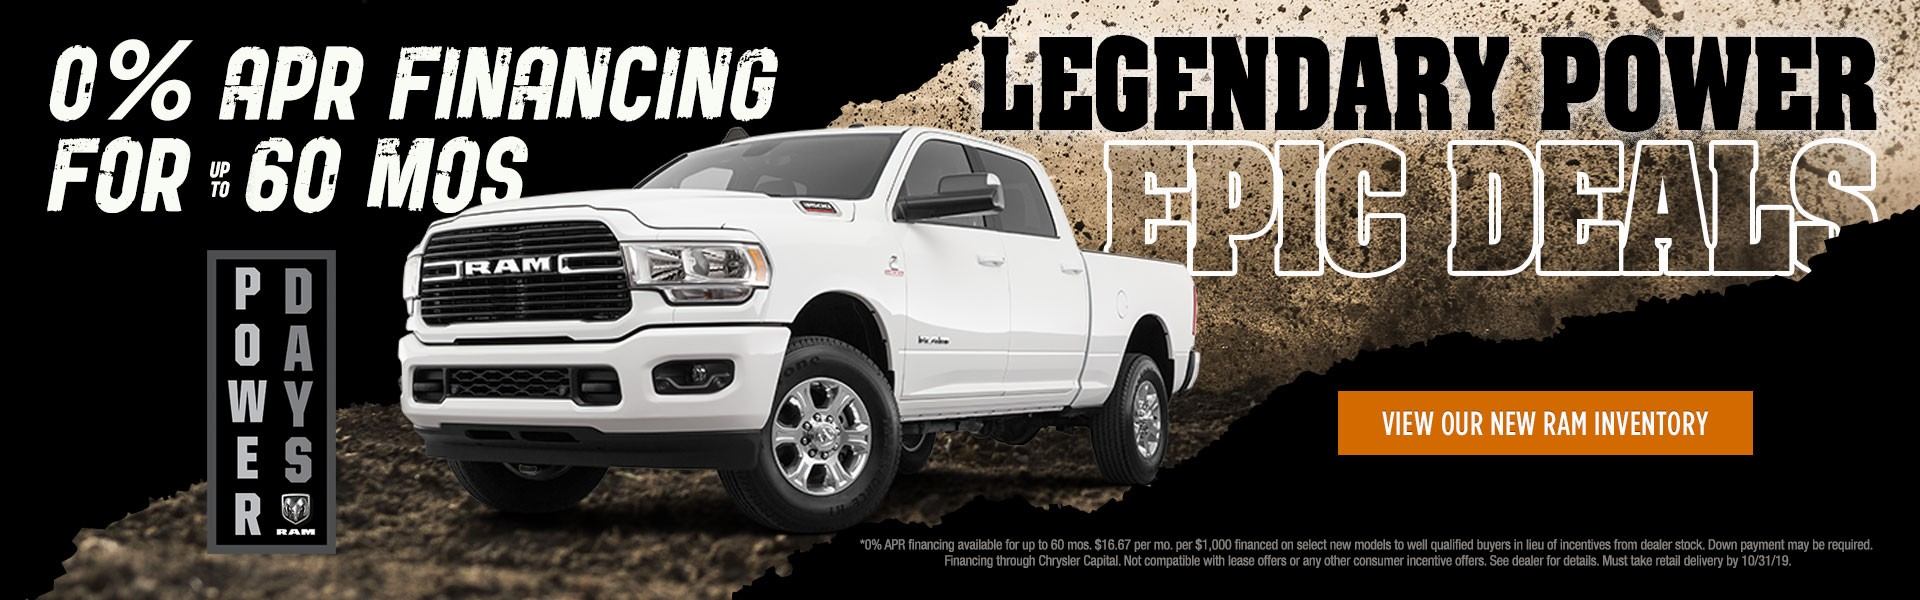 Ram Power Days 0% Financing for 60 Months